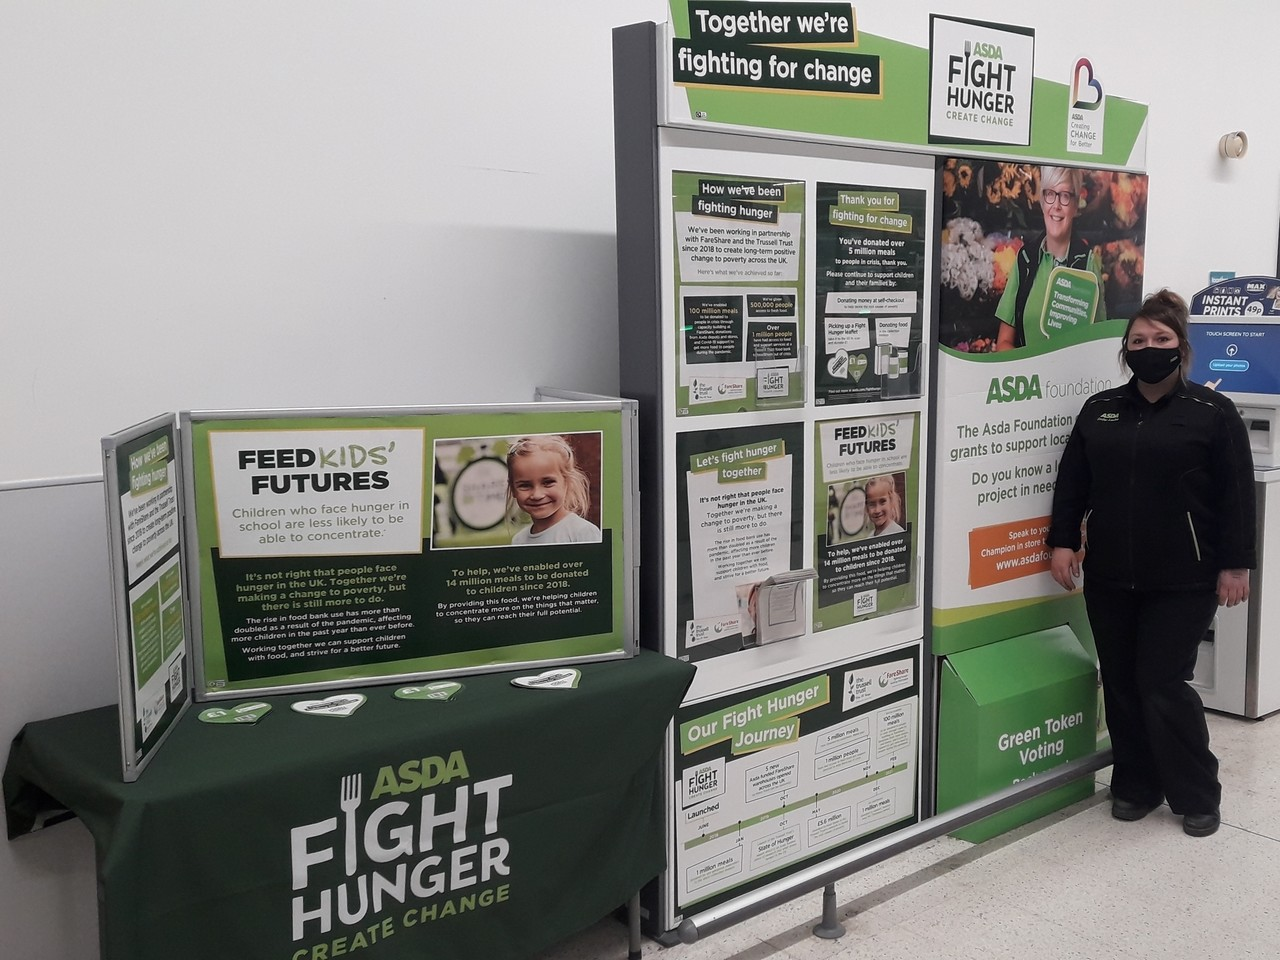 Supporting Fight Hunger Create Change | Asda Boston